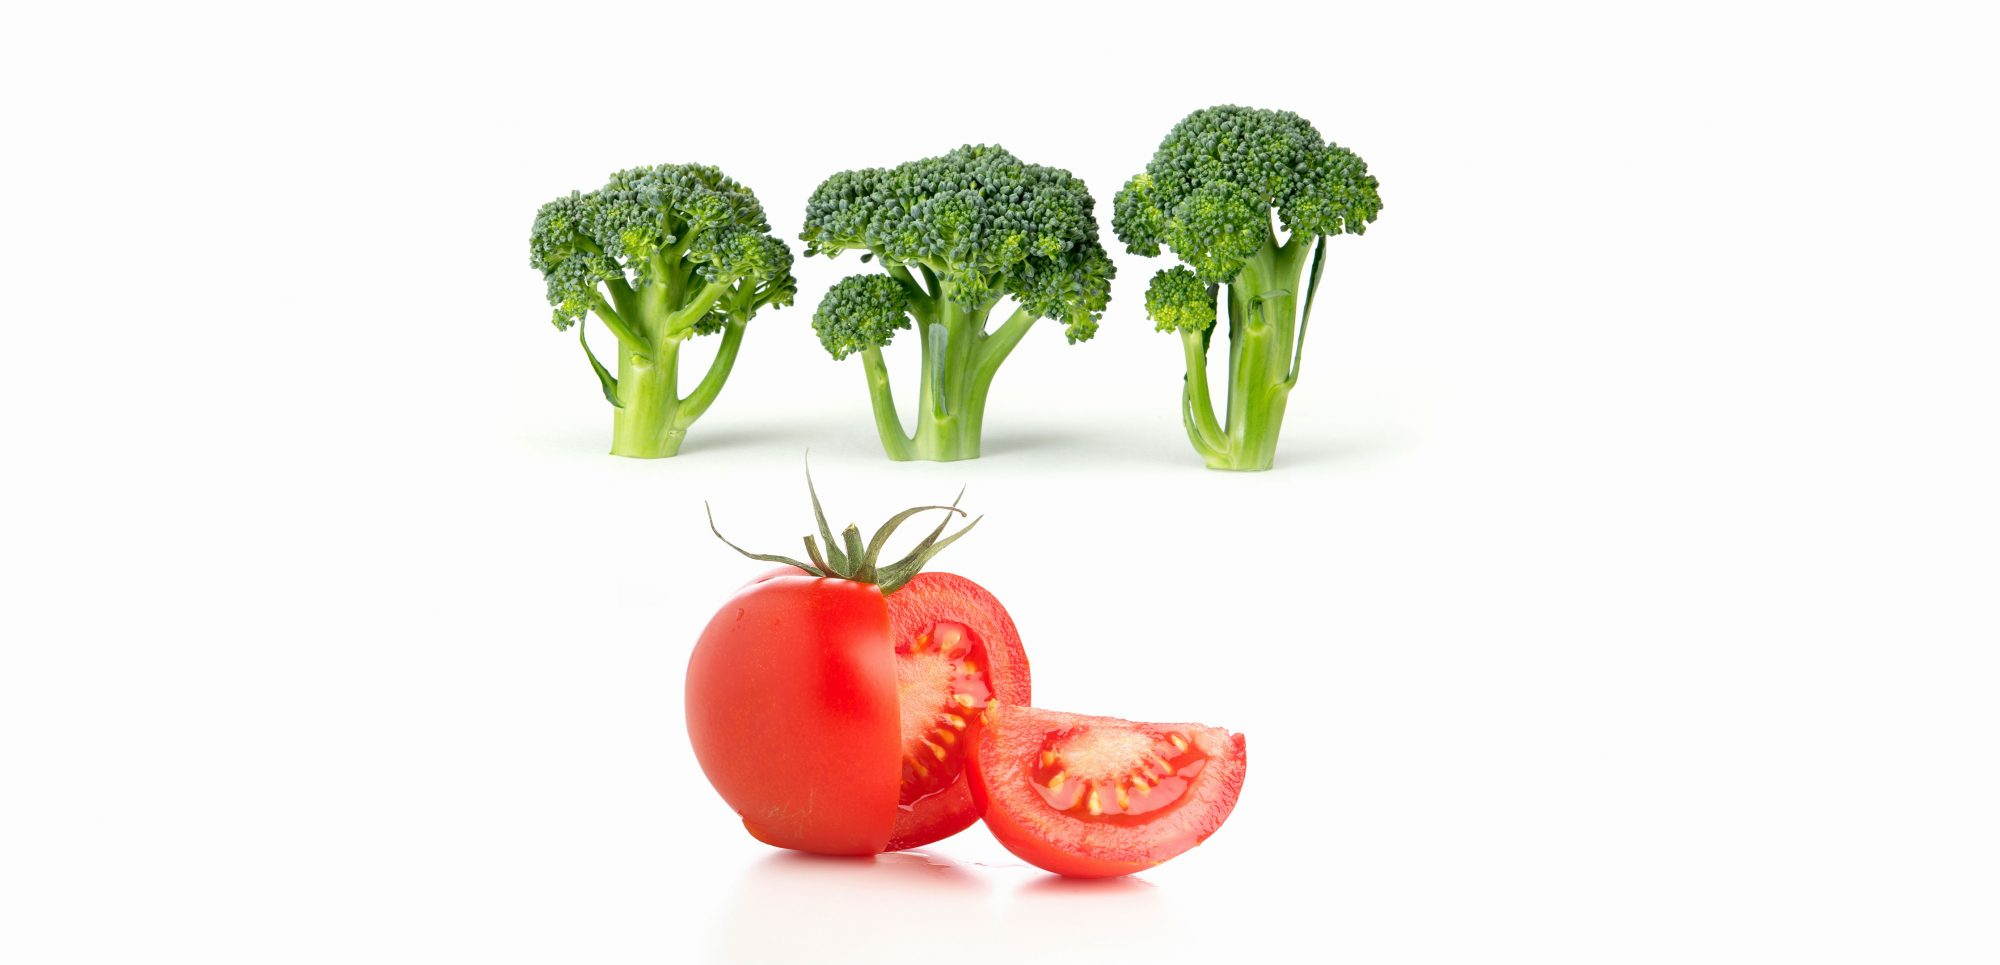 Broccoli + tomatoes